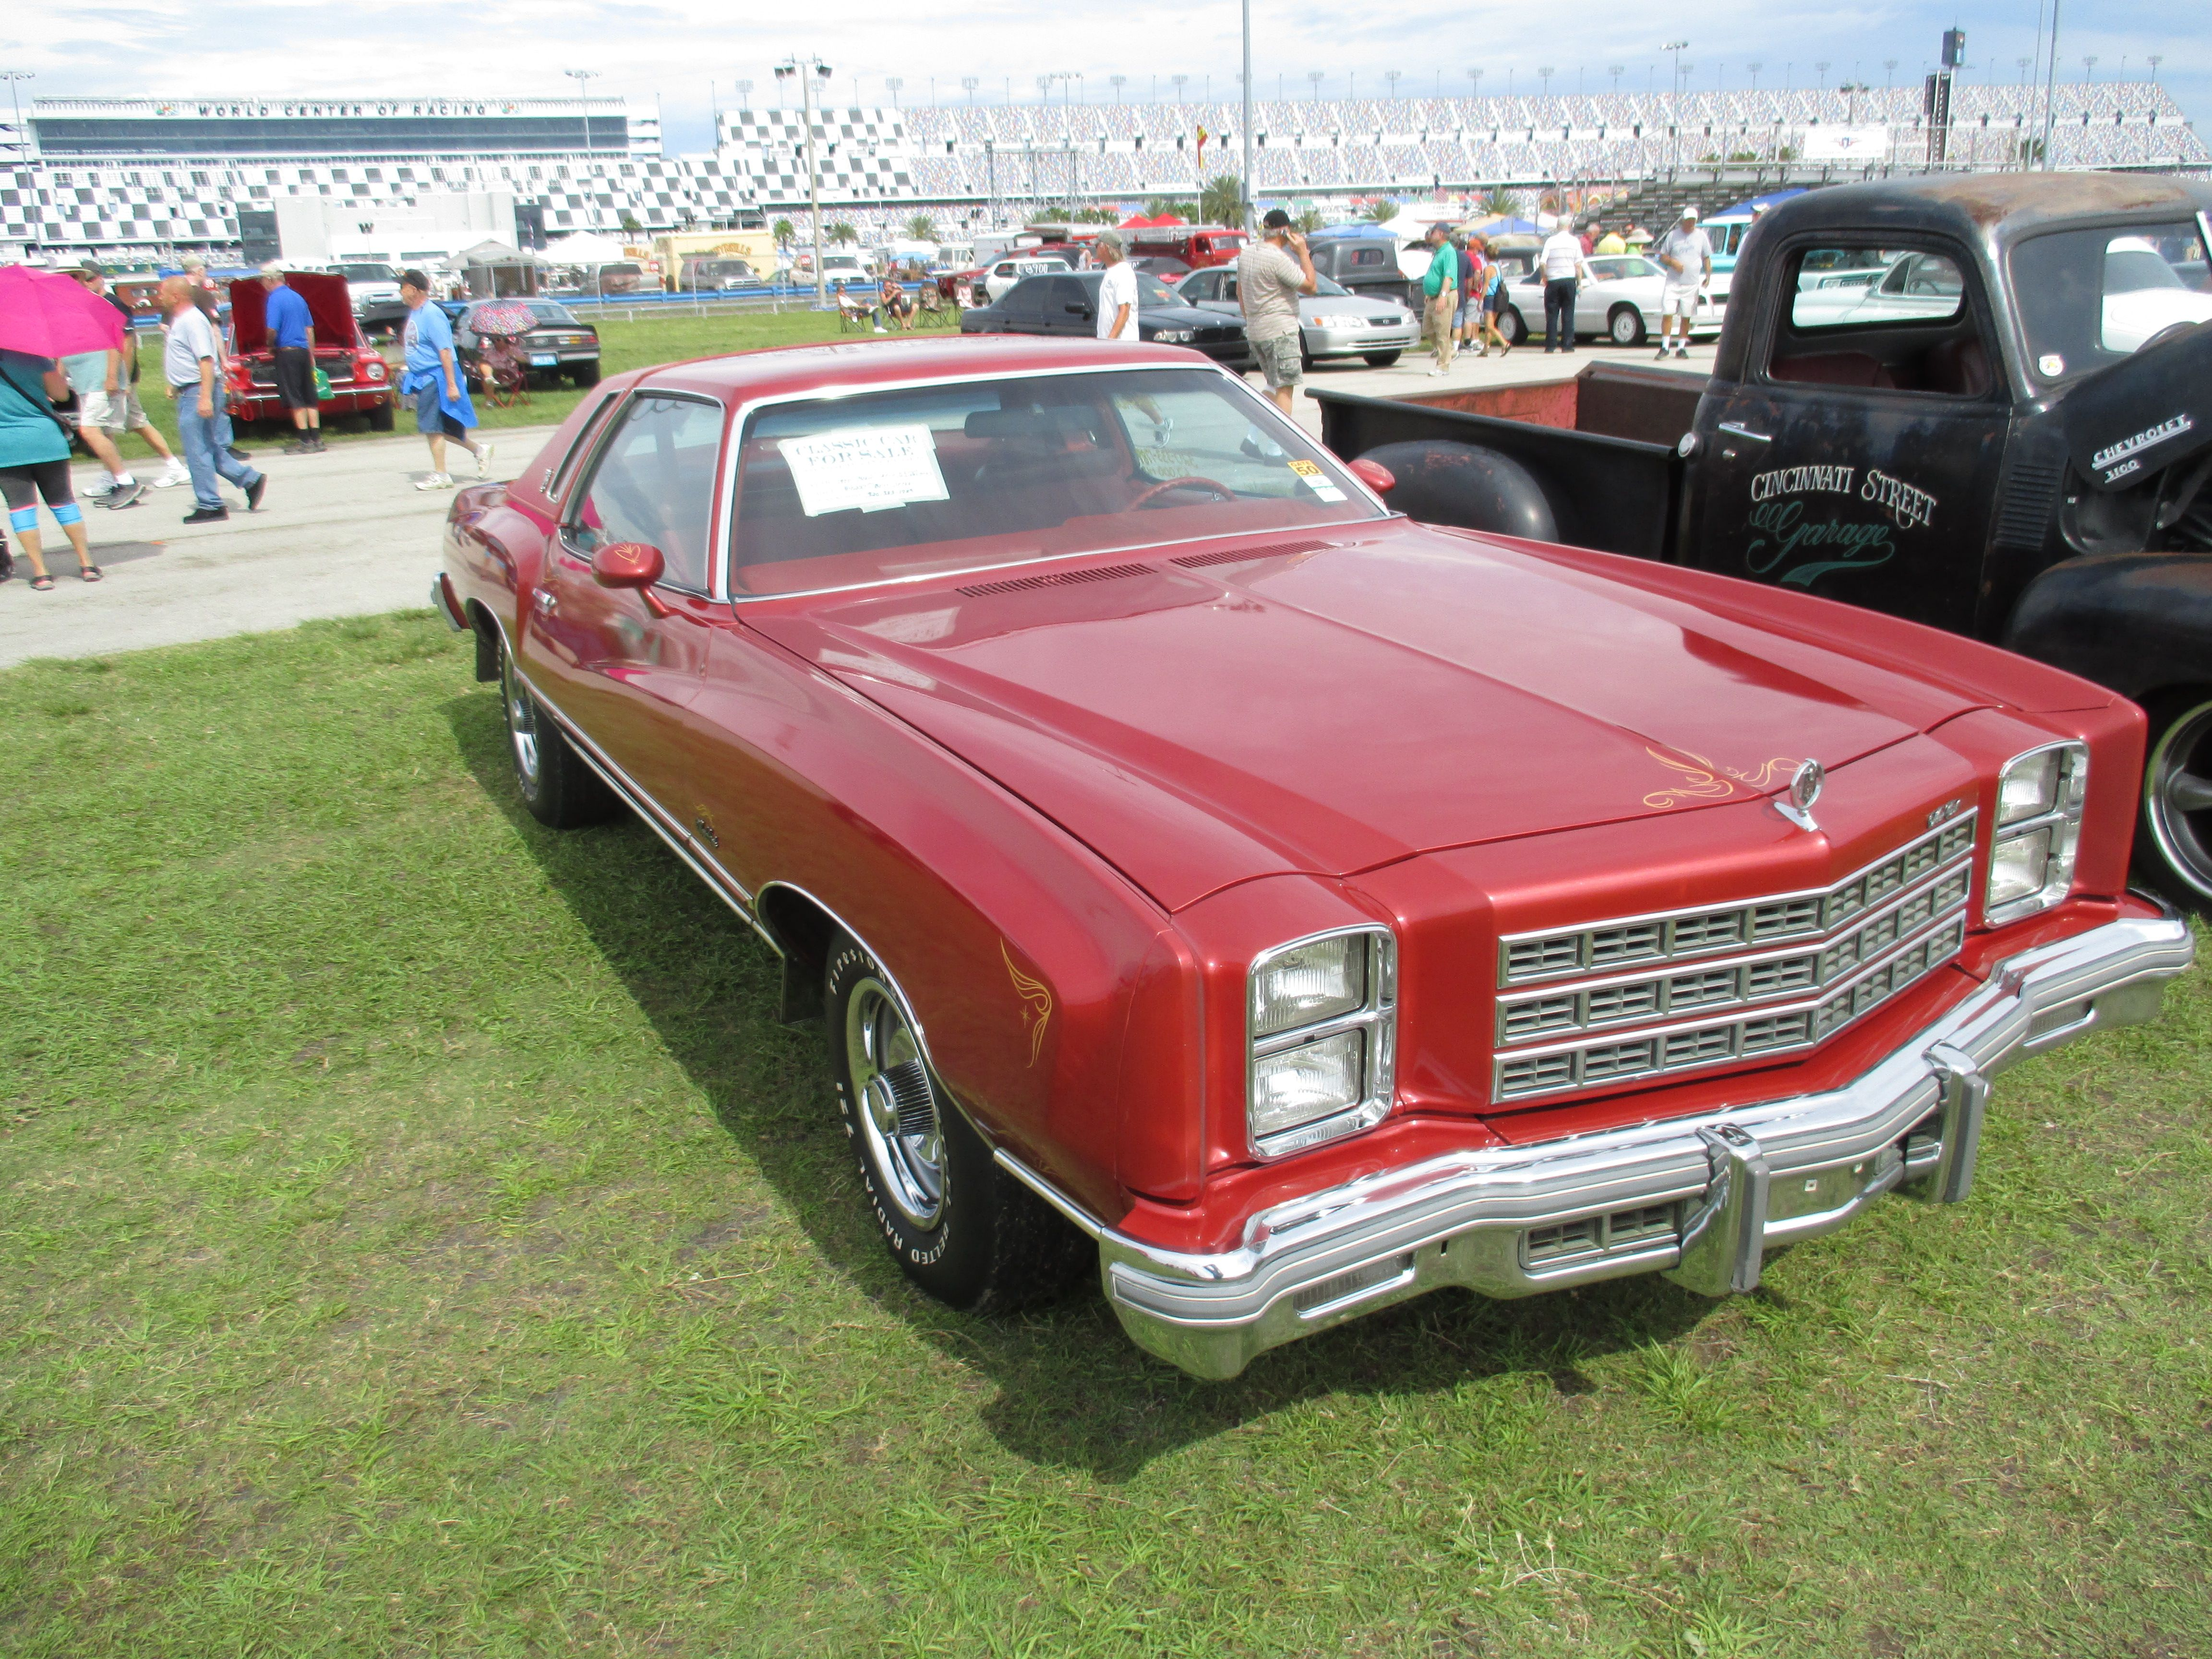 77 Monte Carlo one of the prettiest I have ever seen Spring Daytona